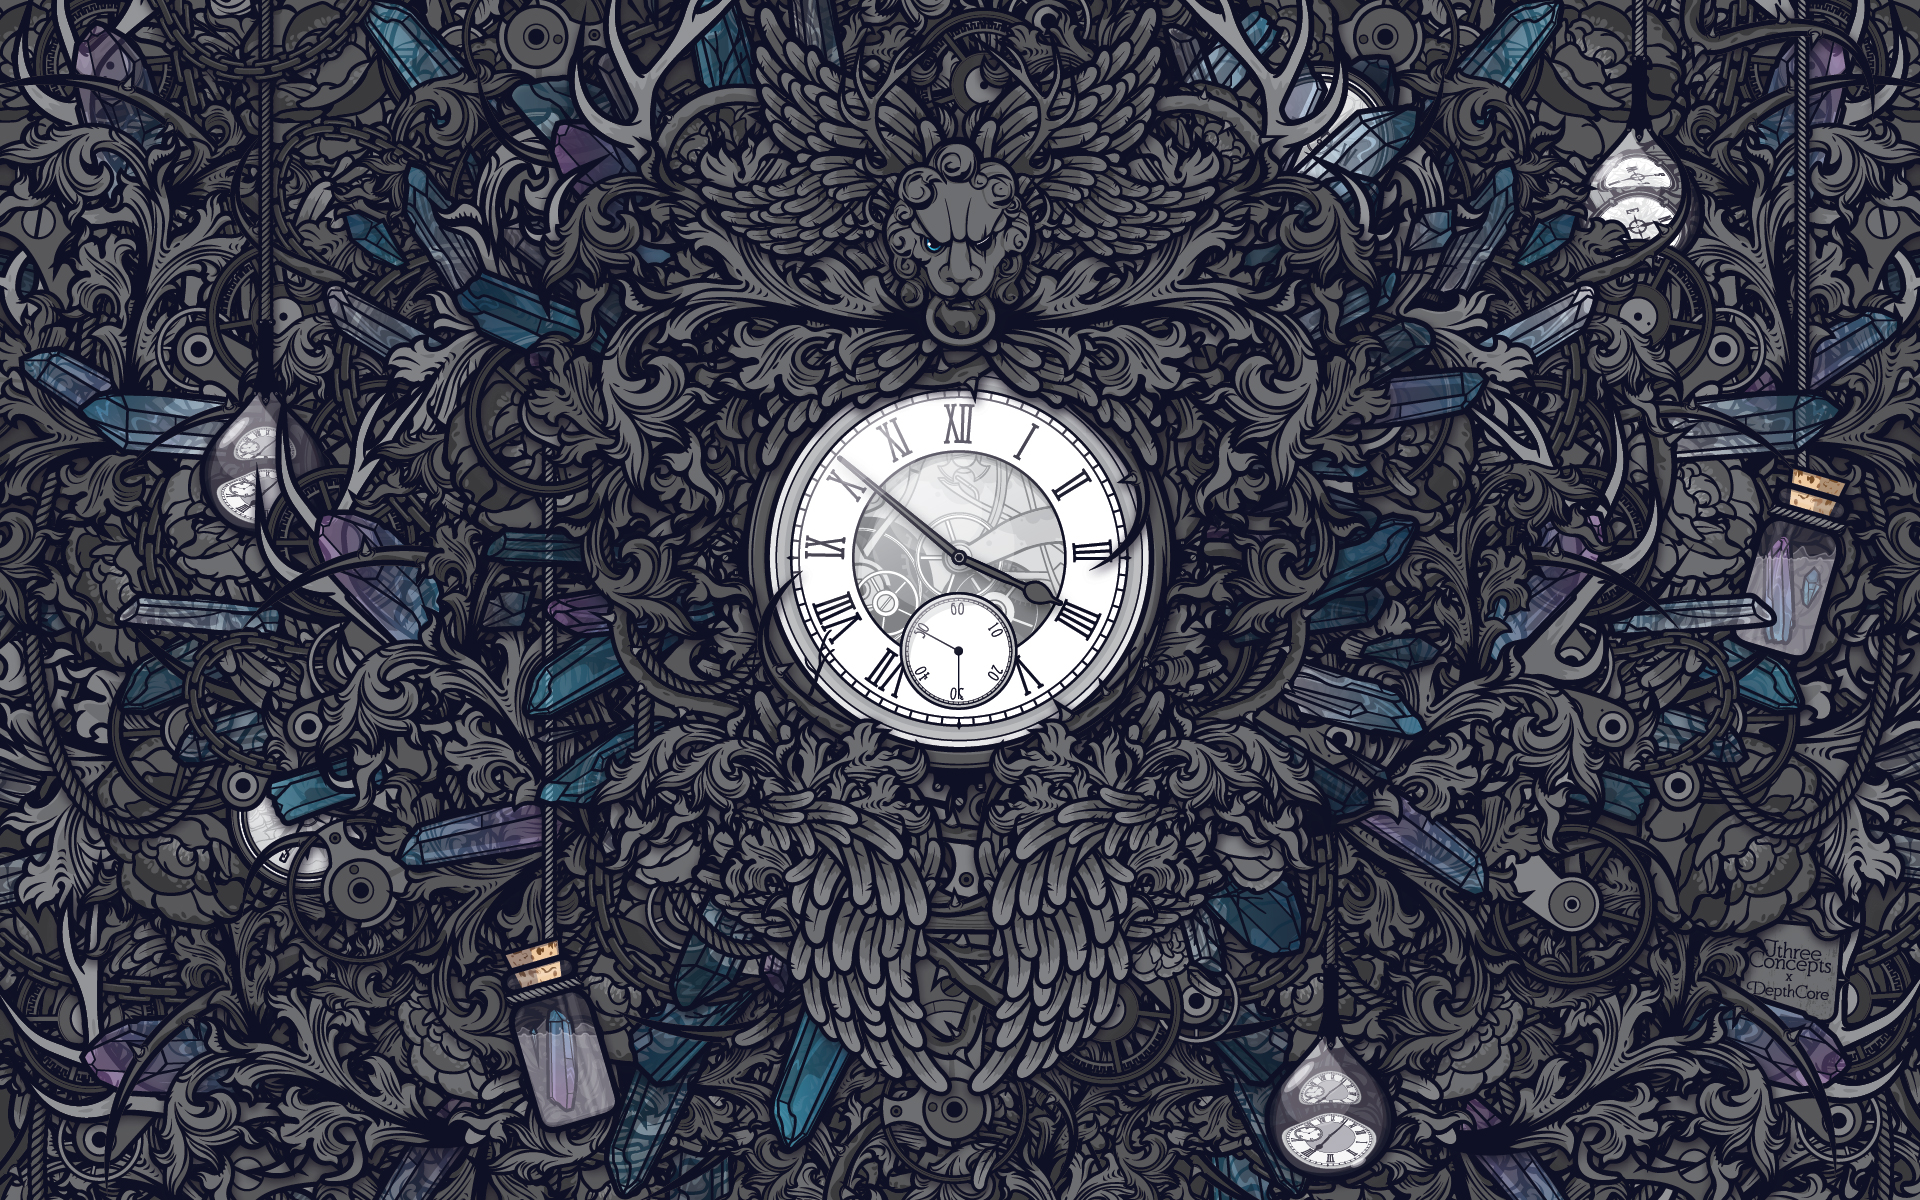 Time Travel in a Time of Regret by Jared K. Nickerson +